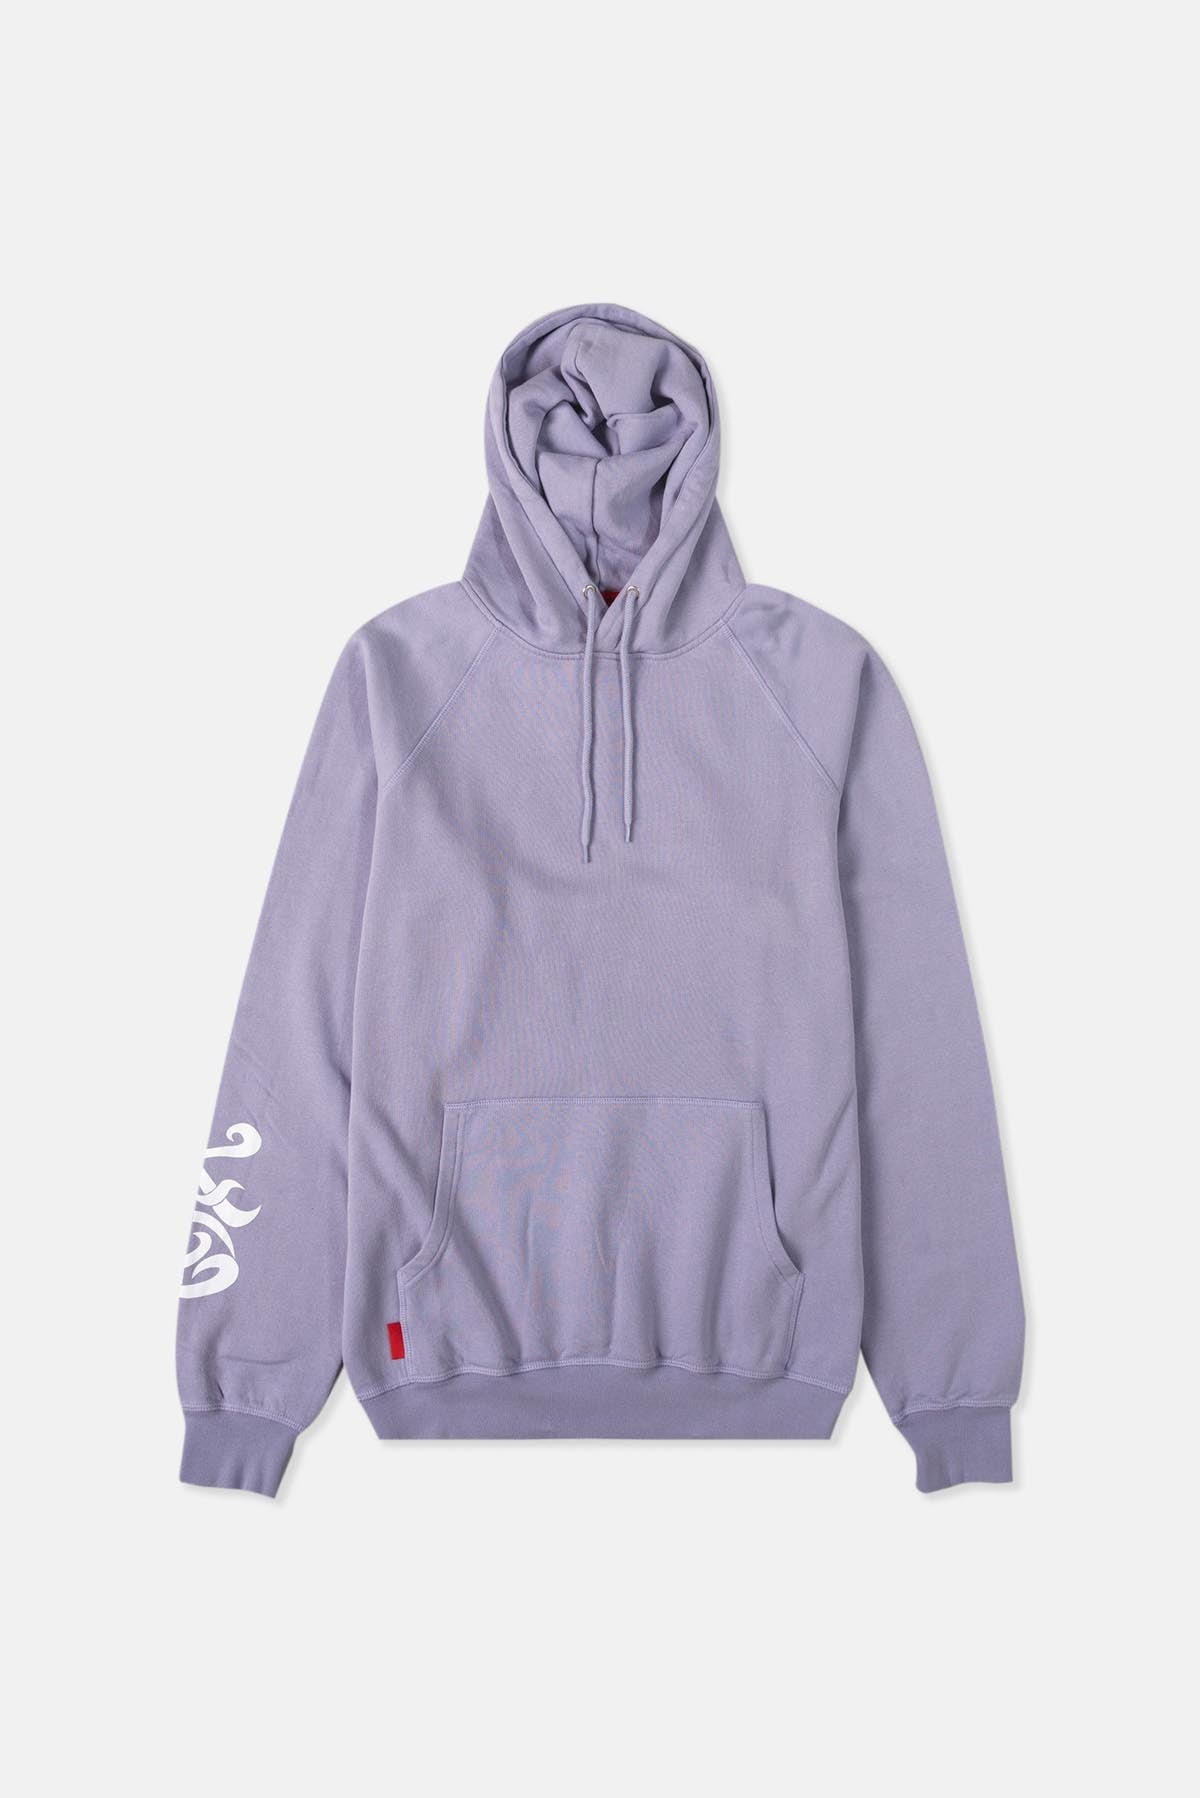 Le Fix Circle Fade Hoodie available from Priory 3041a23eb